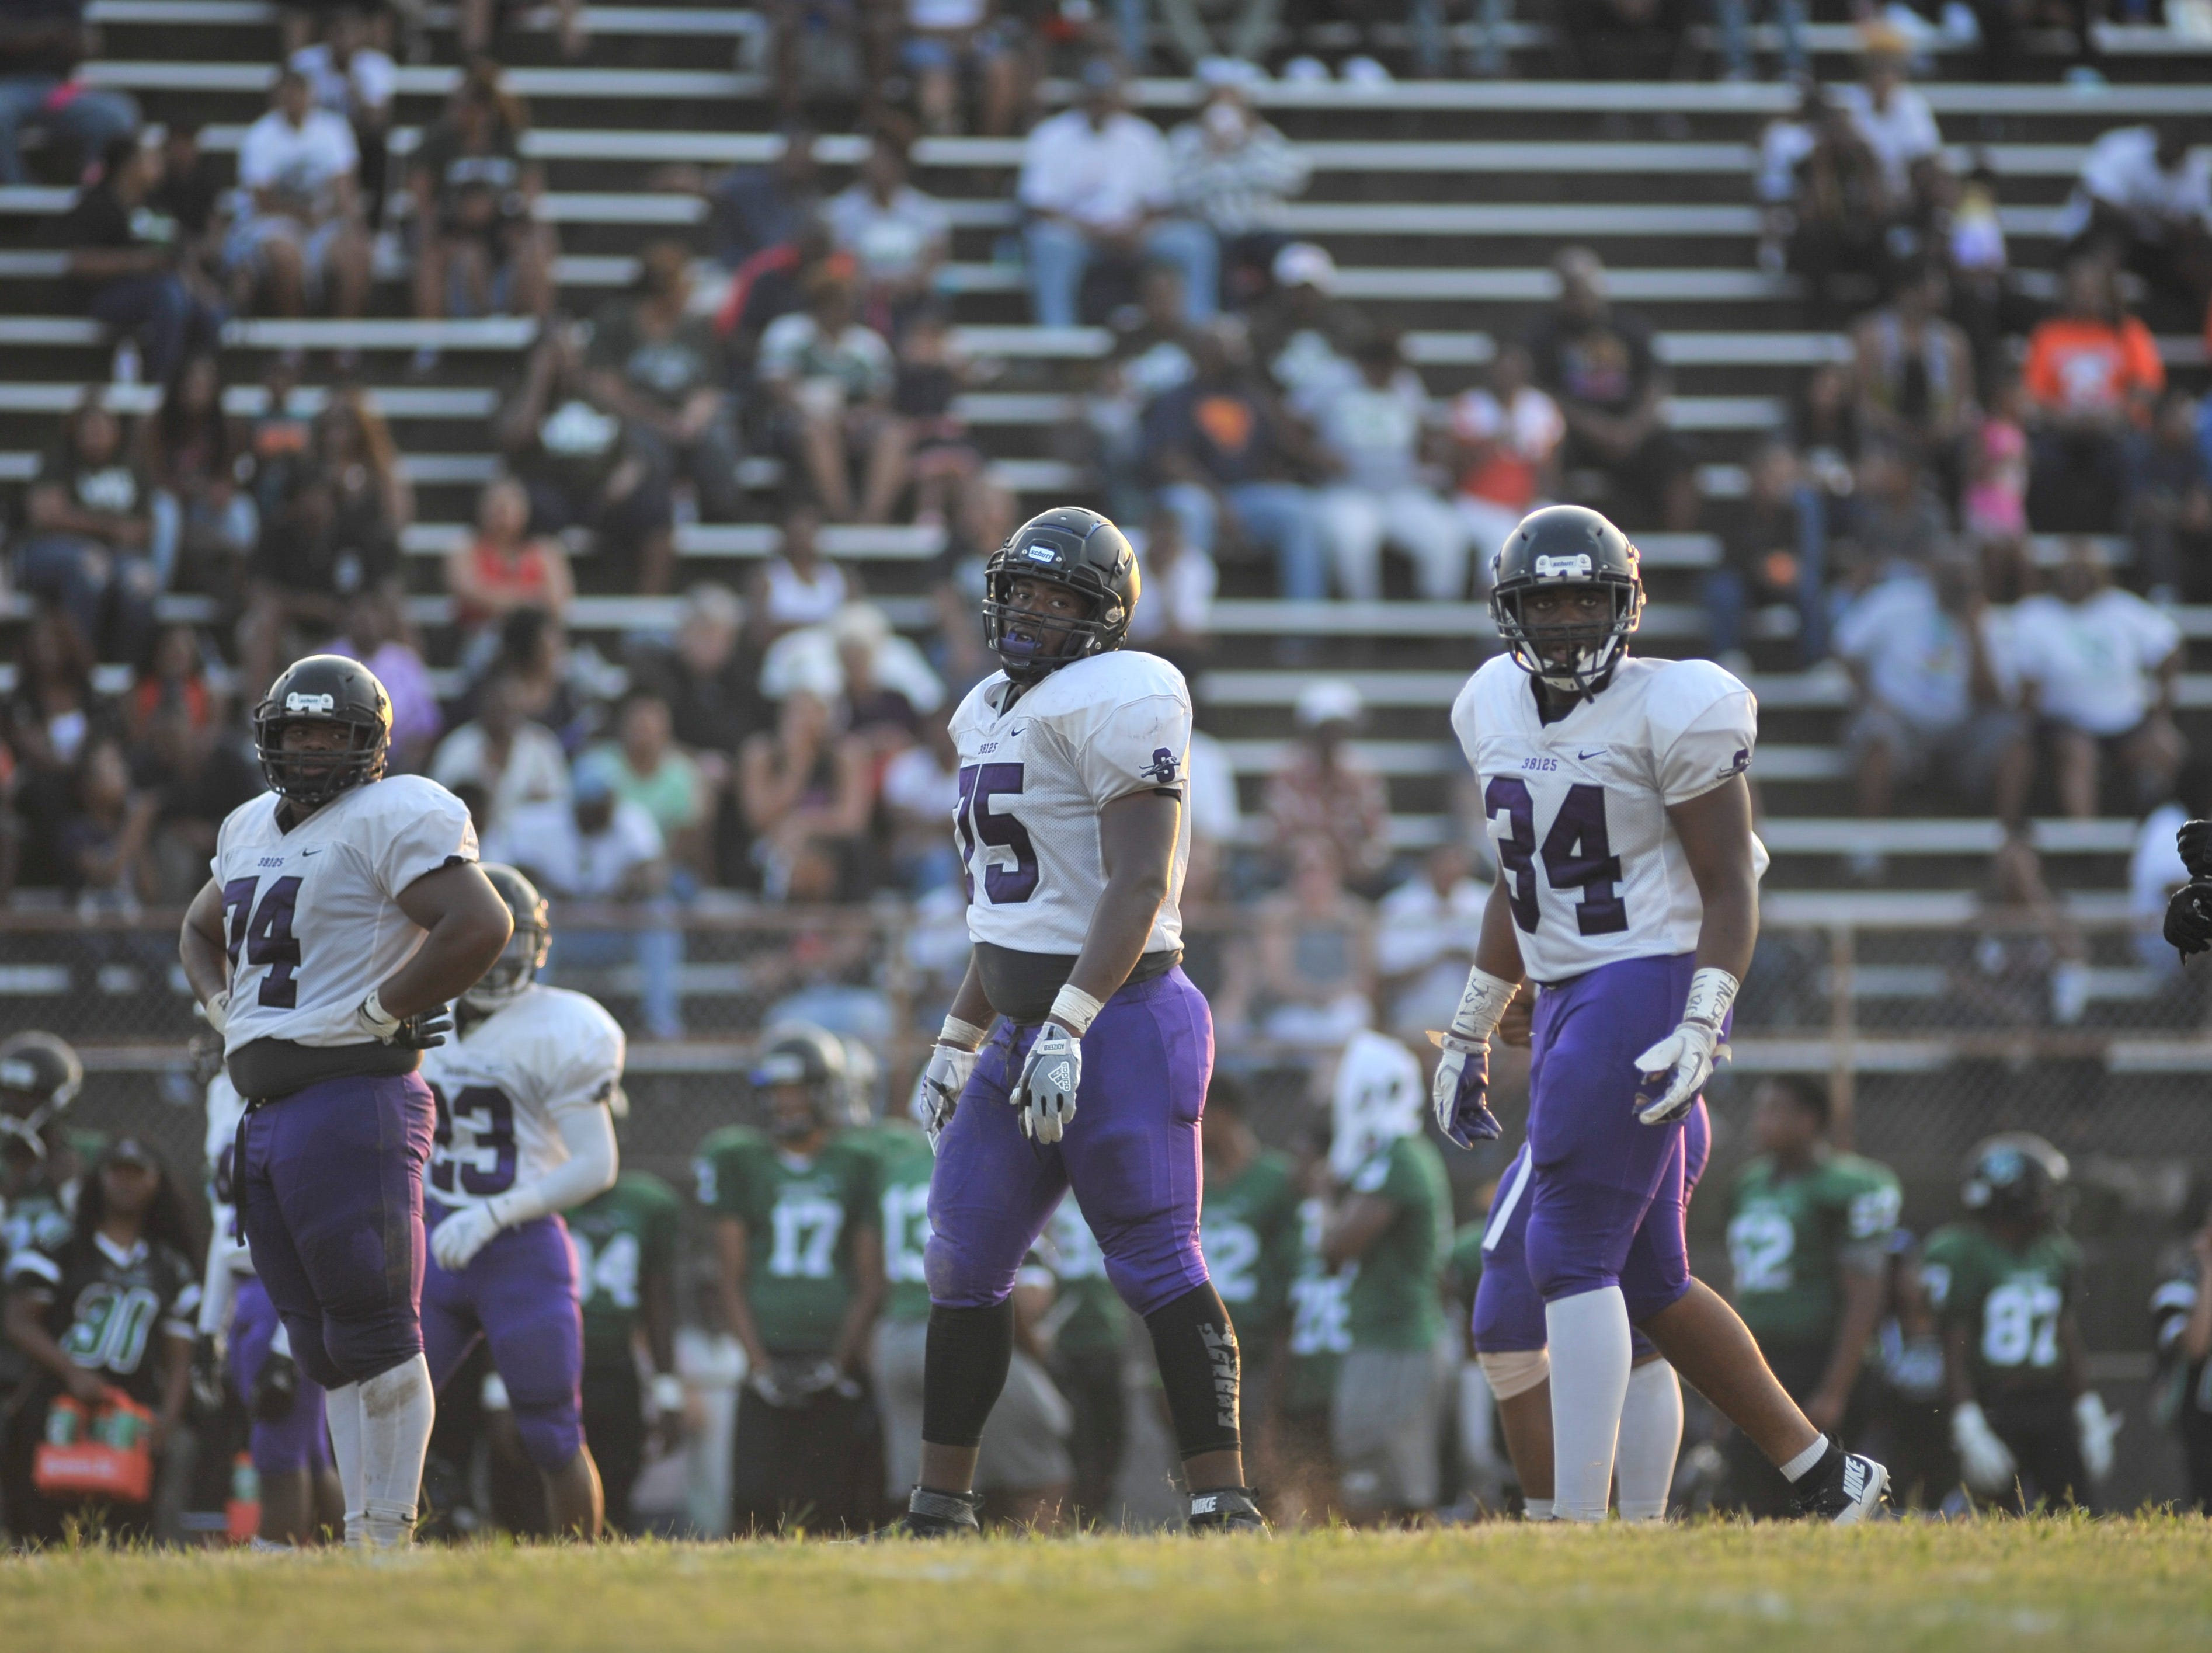 Southwind defensive tackle Kristian Williams commits to Minnesota